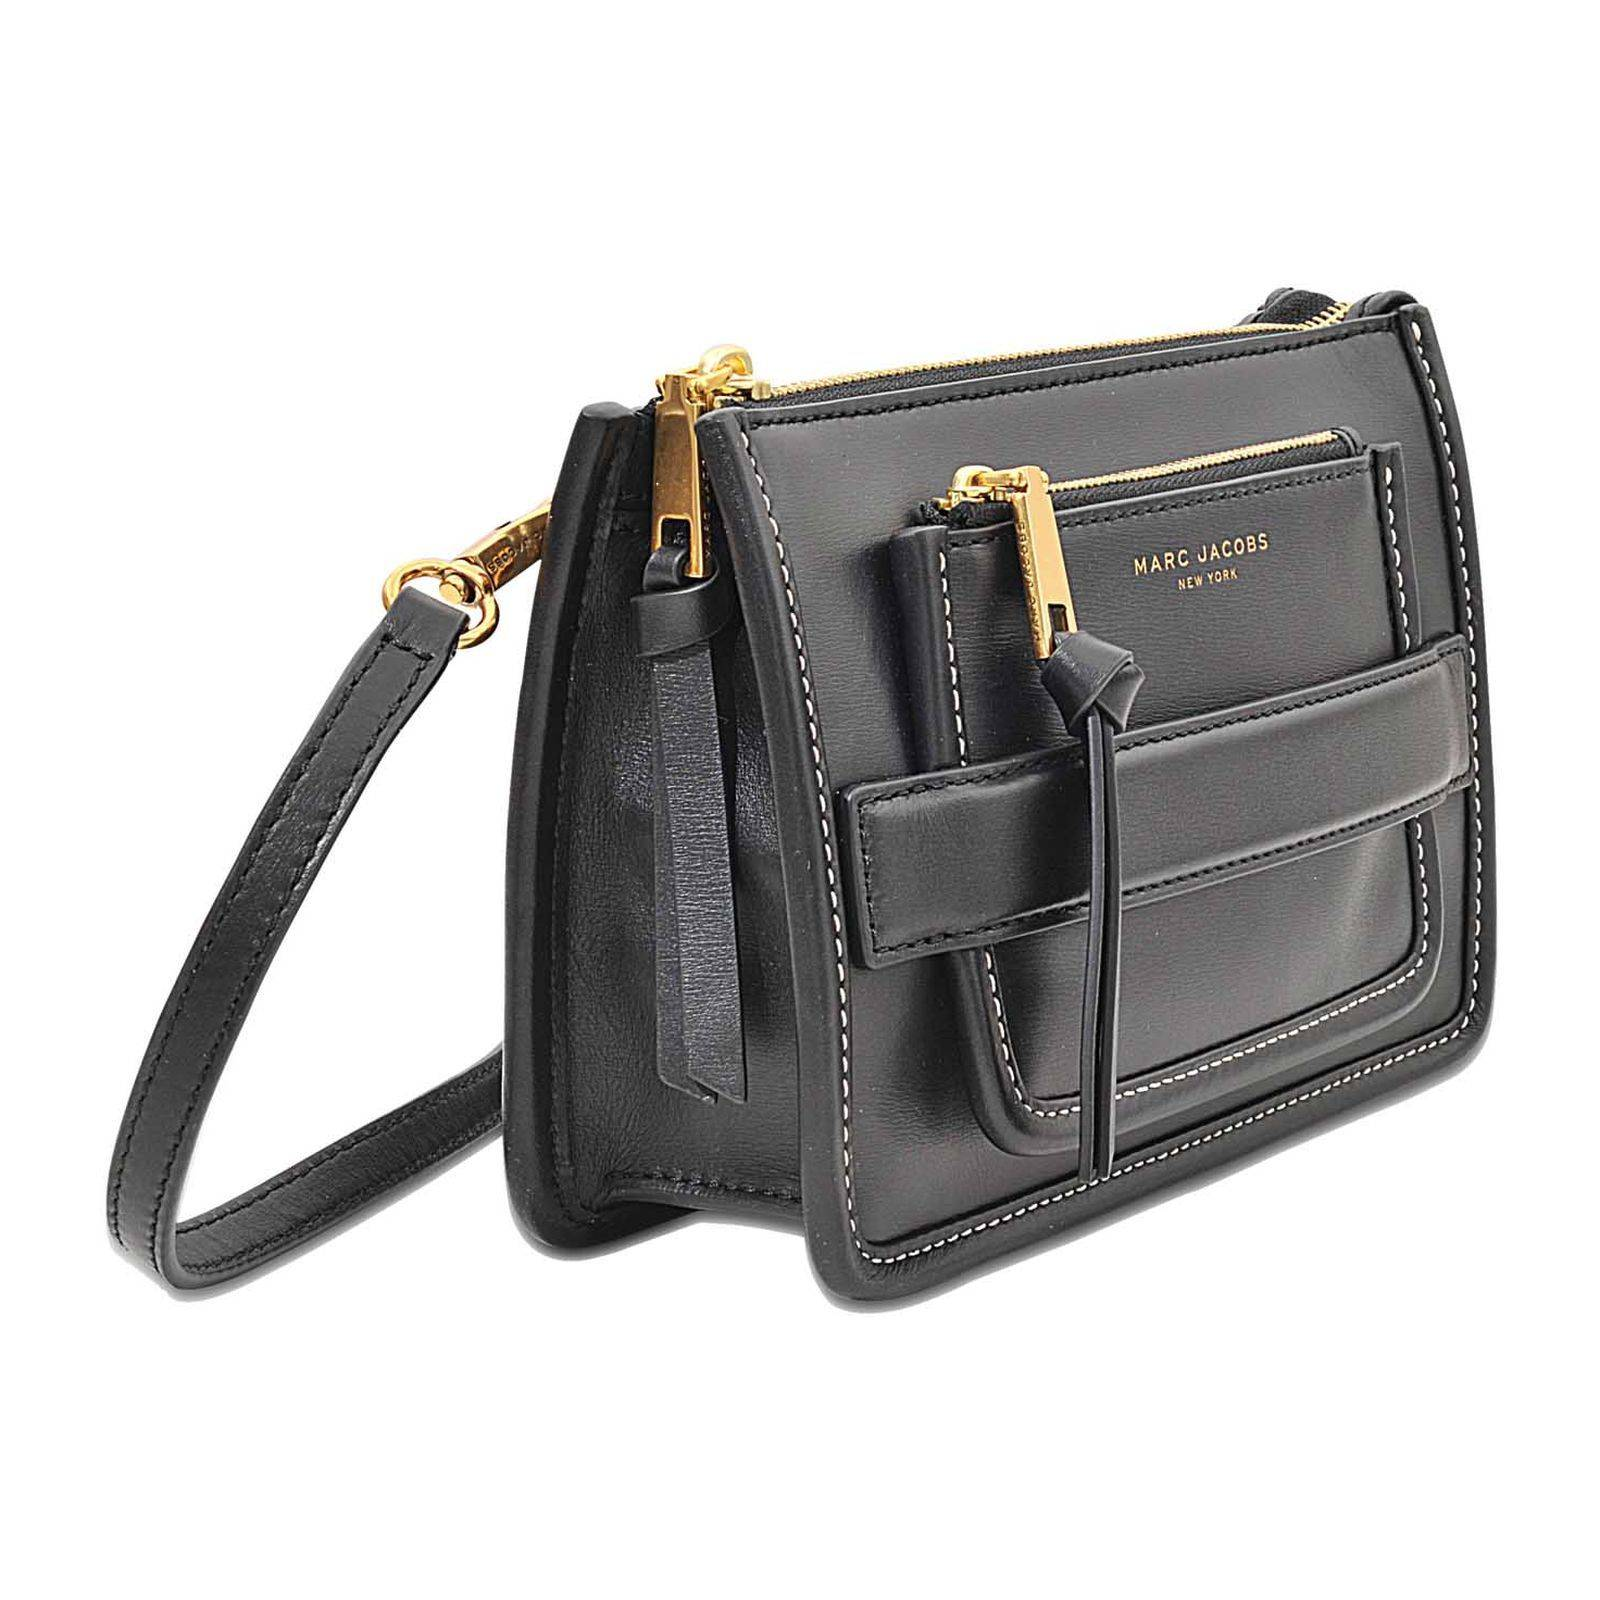 Marc Jacobs Madison - Sac en cuir - noir   BrandAlley 46da1adbd25e